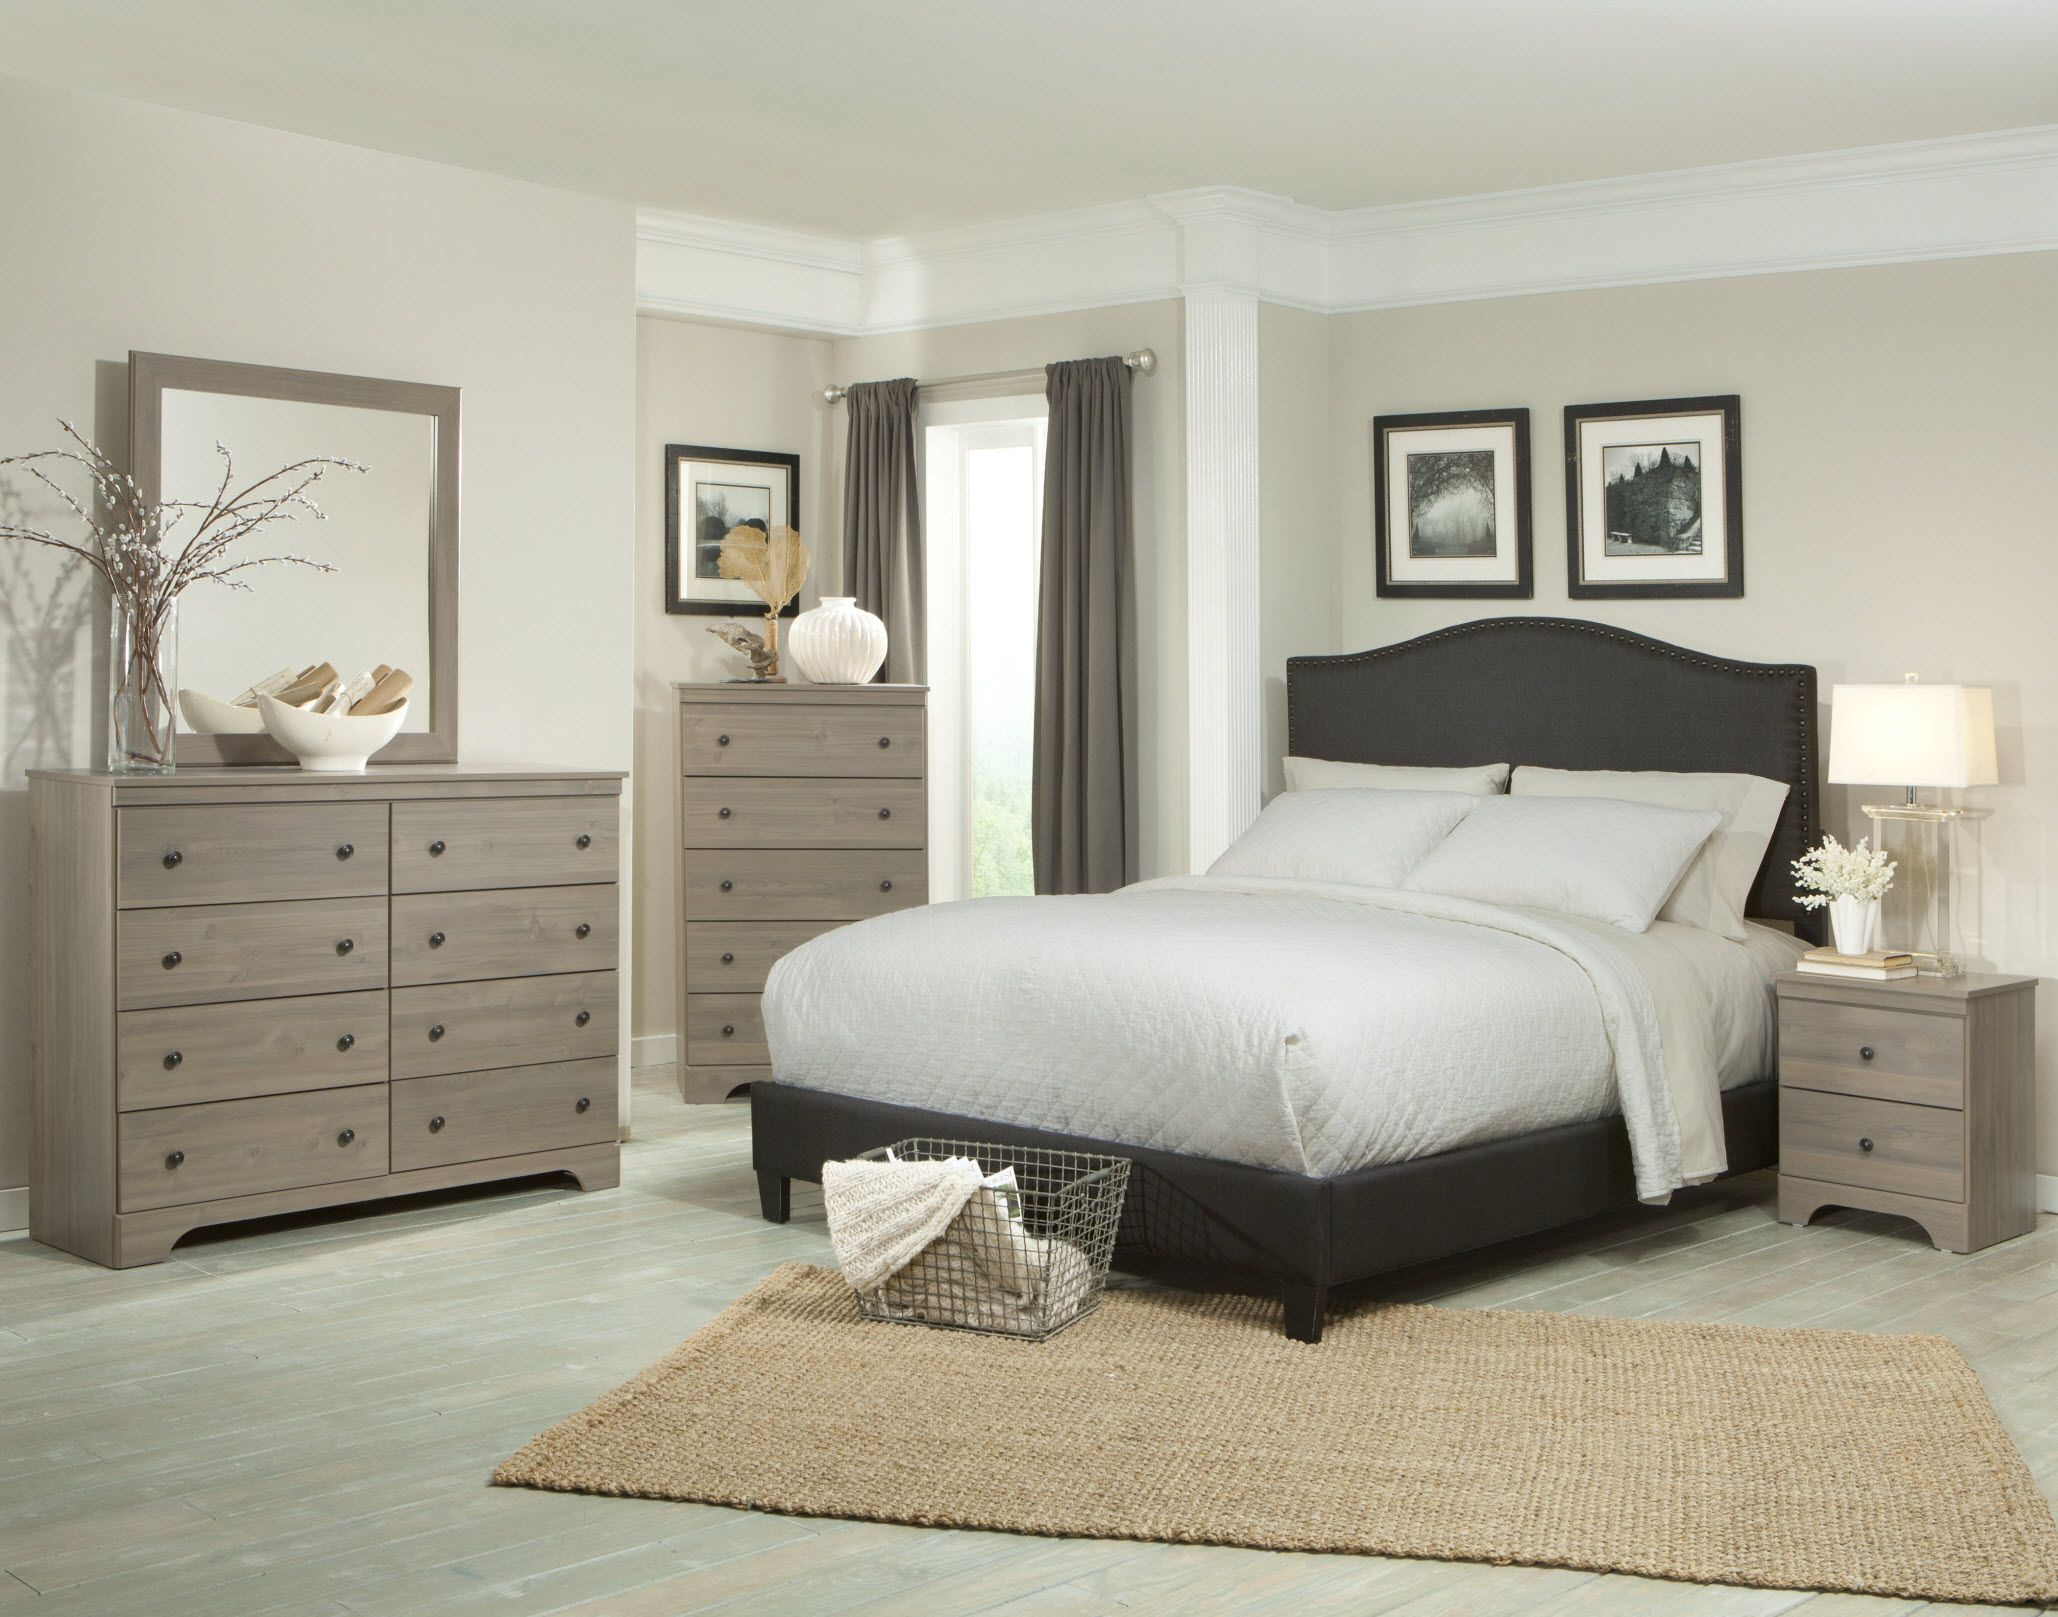 Ornate Wooden Ikea Bedroom Transitional Furniture Sets With Queen Platform Beds As Well As